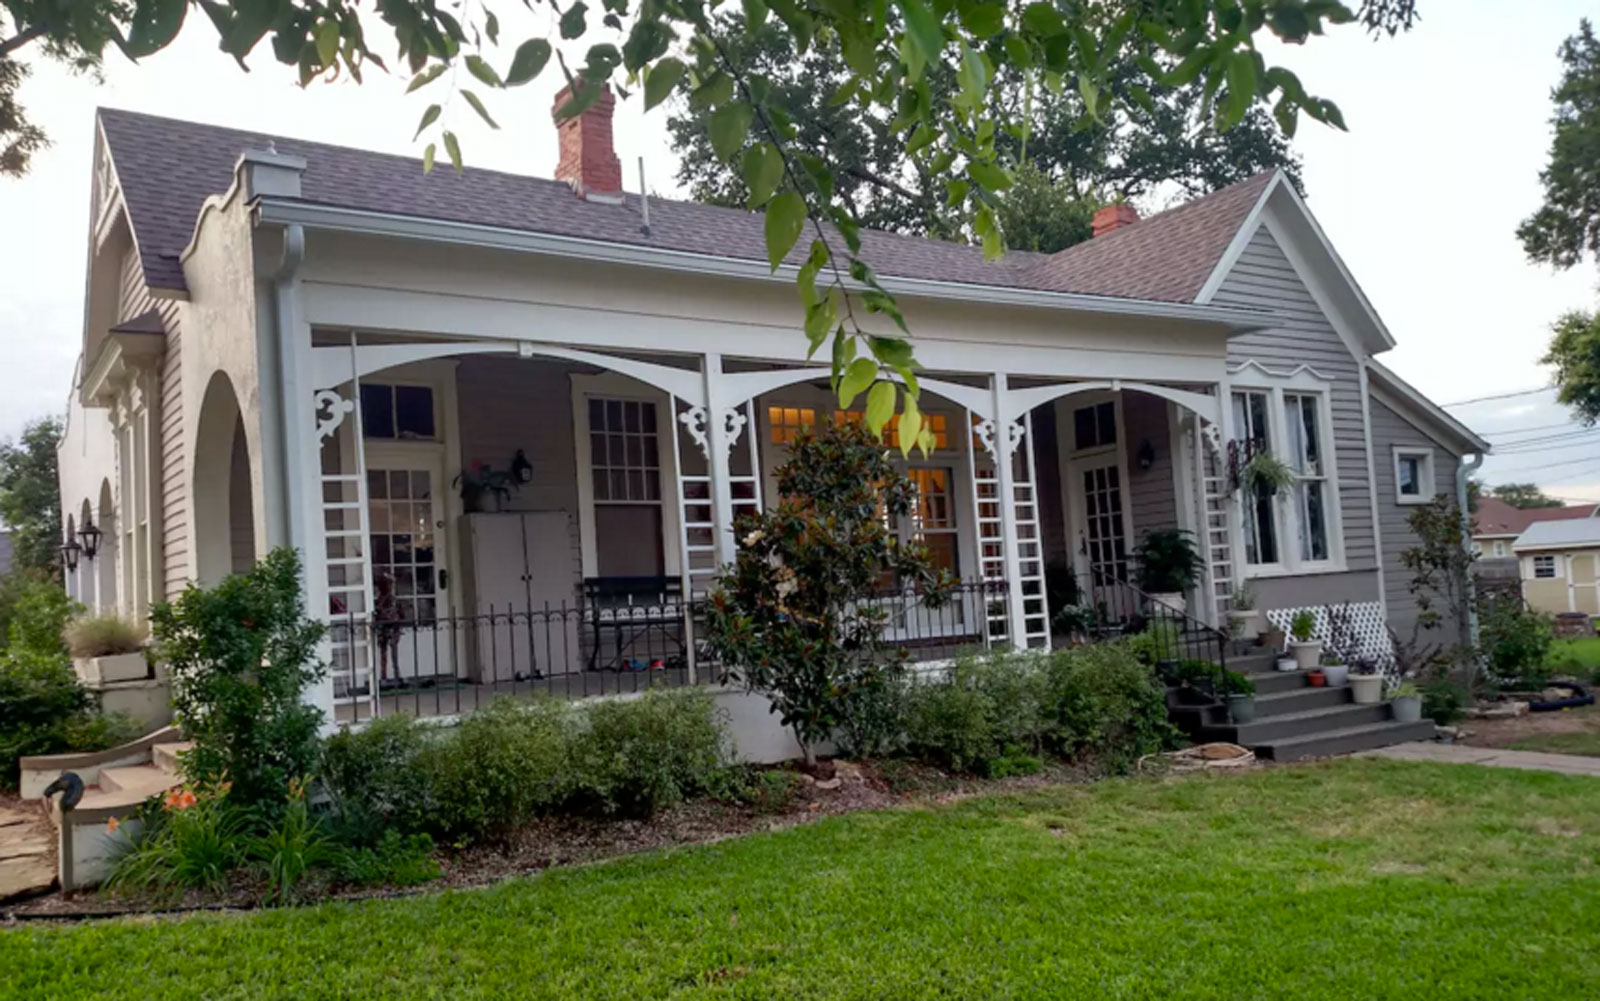 A house from Fixer Upper available on Airbnb.